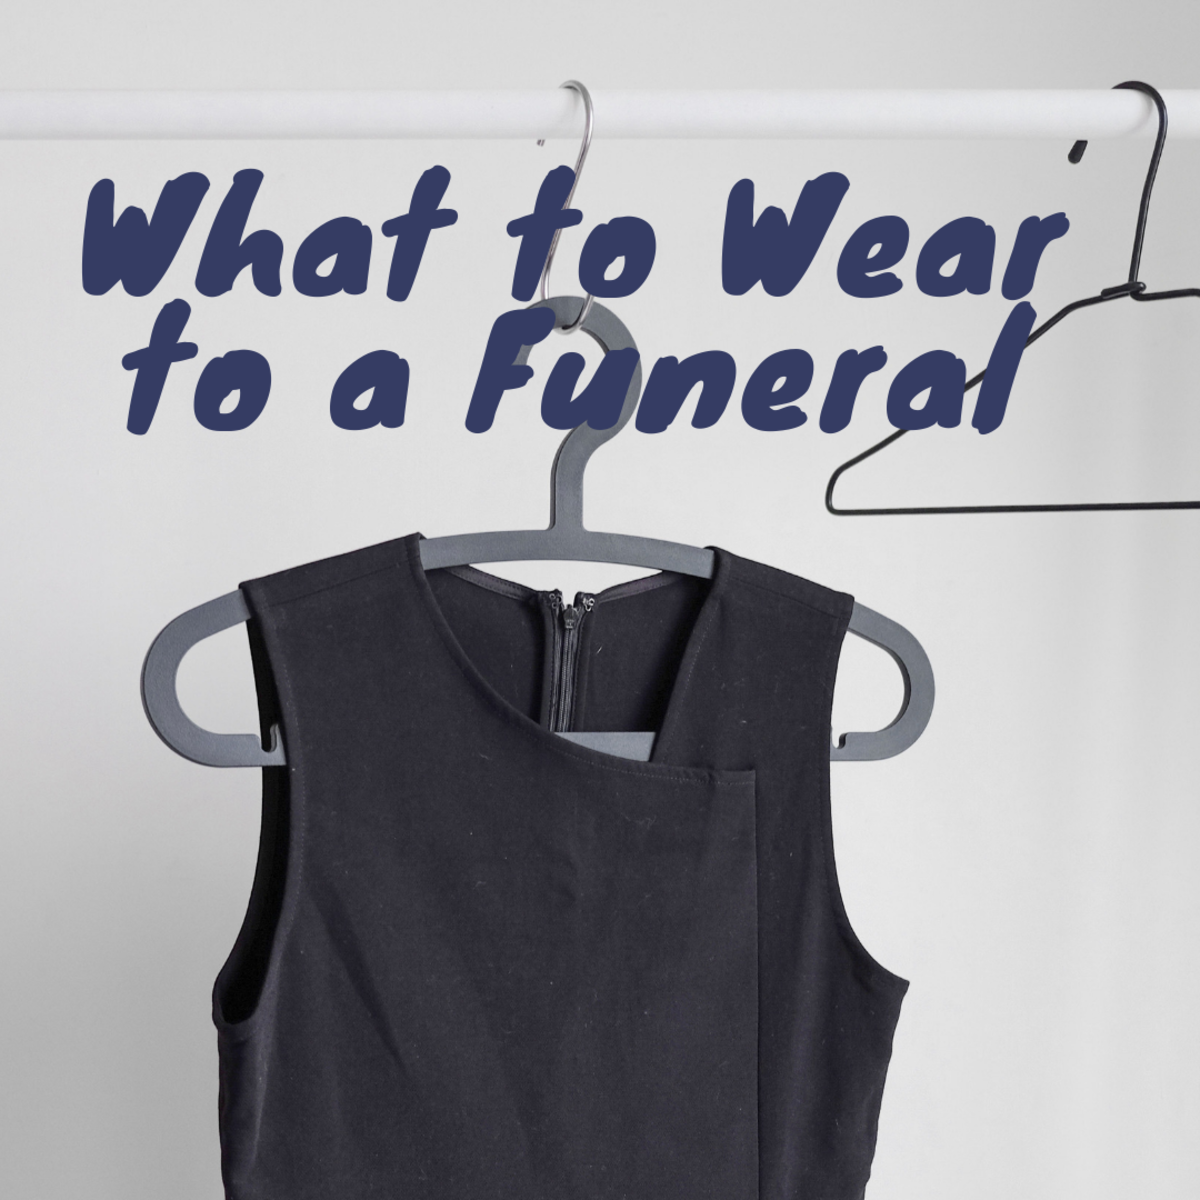 You don't have to go with the standard black for a funeral, but you do want to dress appropriately.